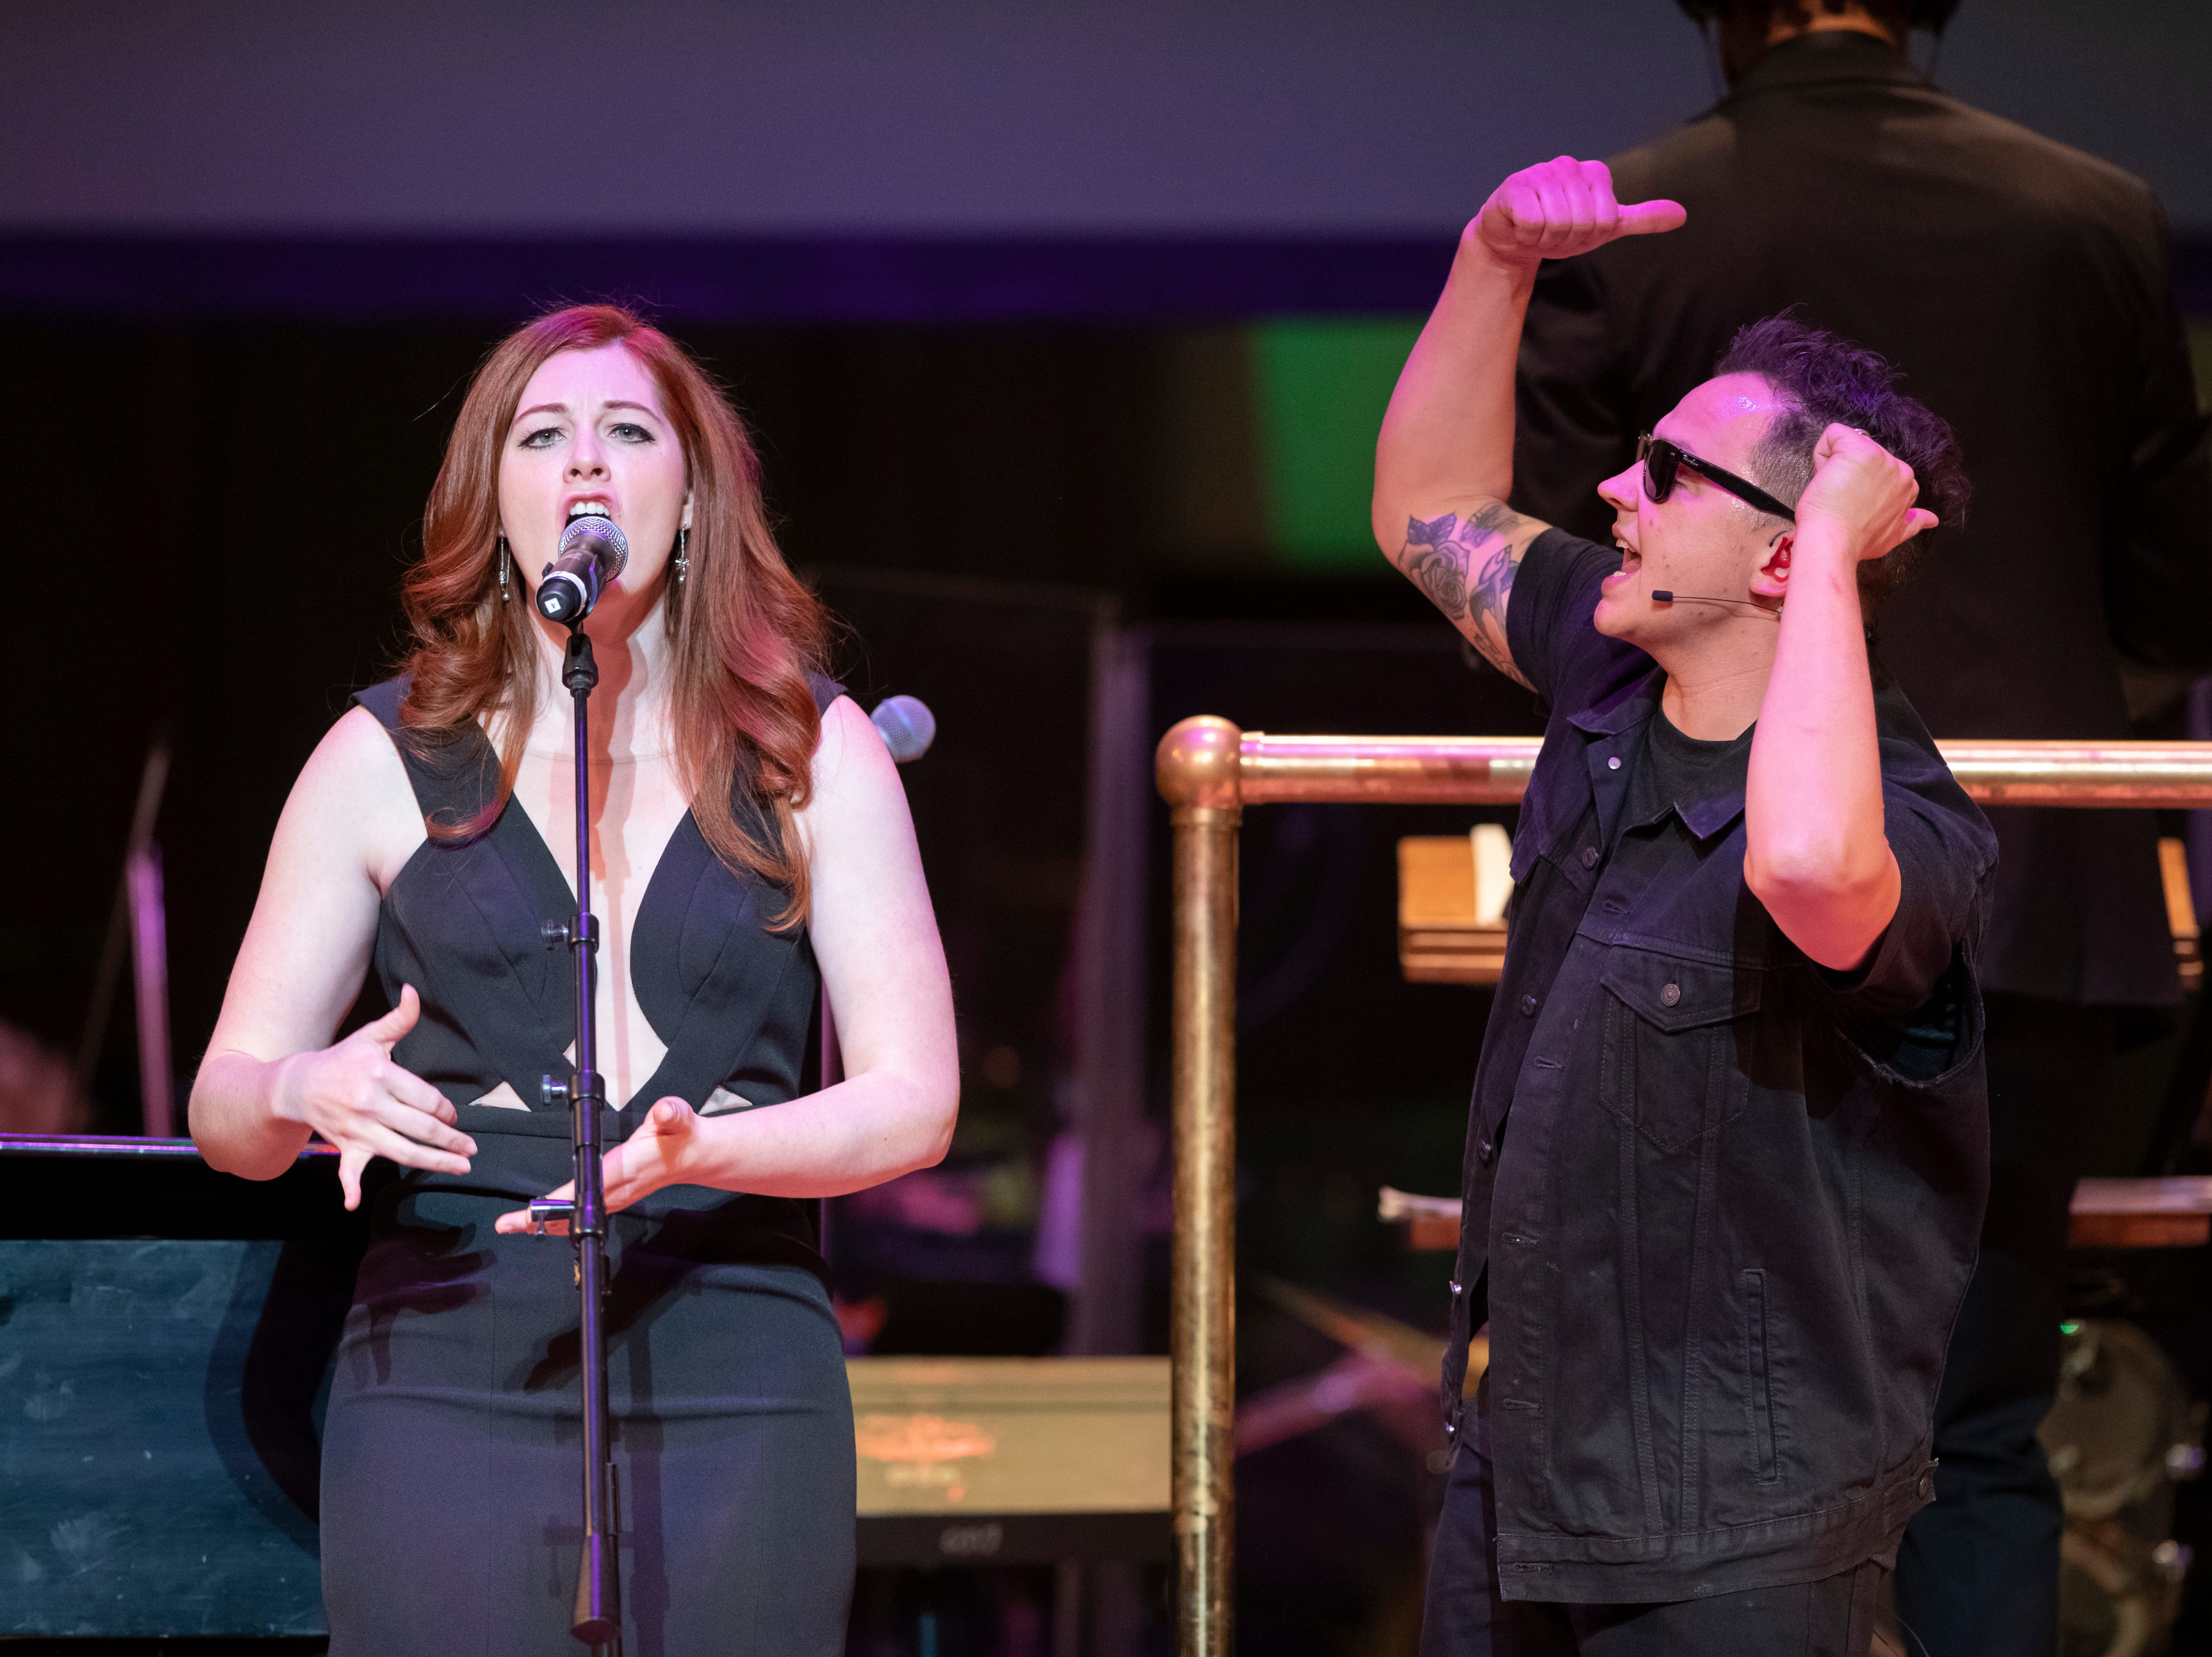 Musicians Mandy Harvey, left, and Sean Forbes perform during the Deaf and Loud Symphonic Experience at the Detroit Symphony Orchestra.